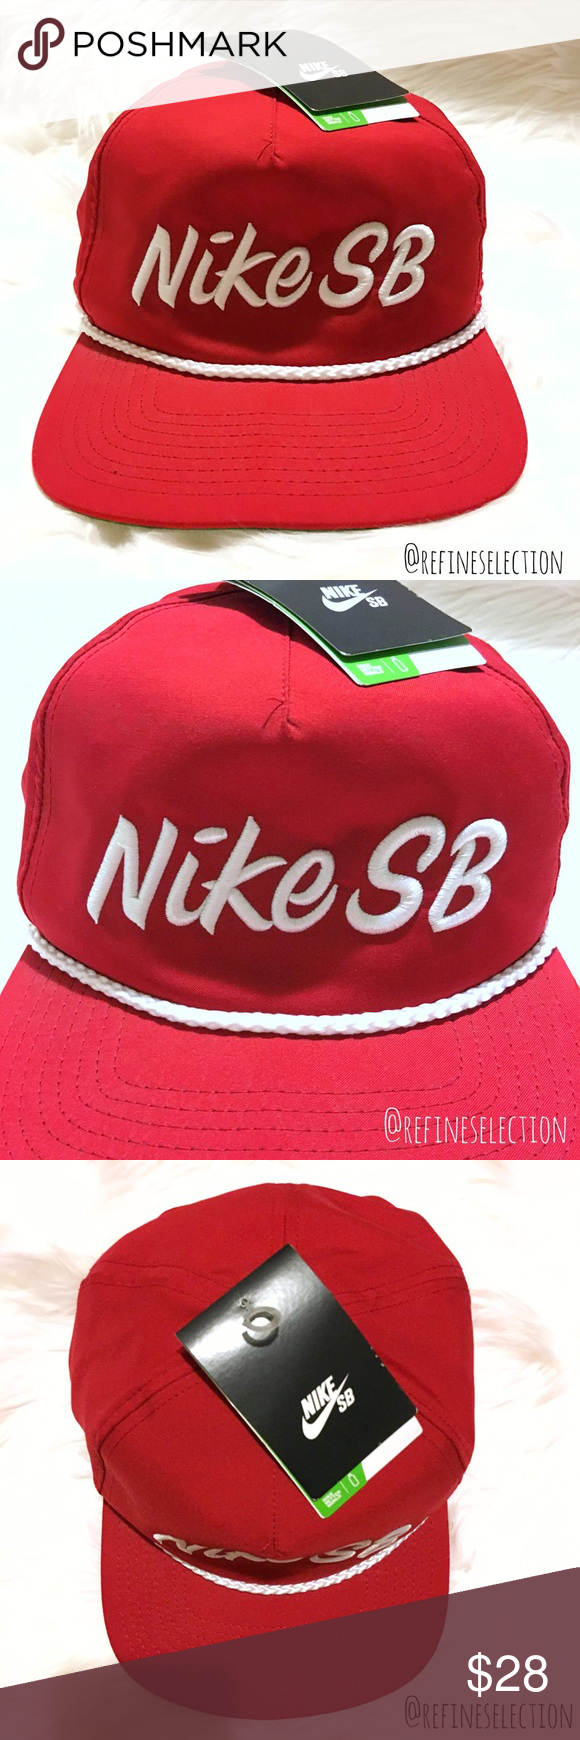 933aab9e8 Nike SB Unstructured Dri Fit Pro Snapback Cap Hat Brand new with ...